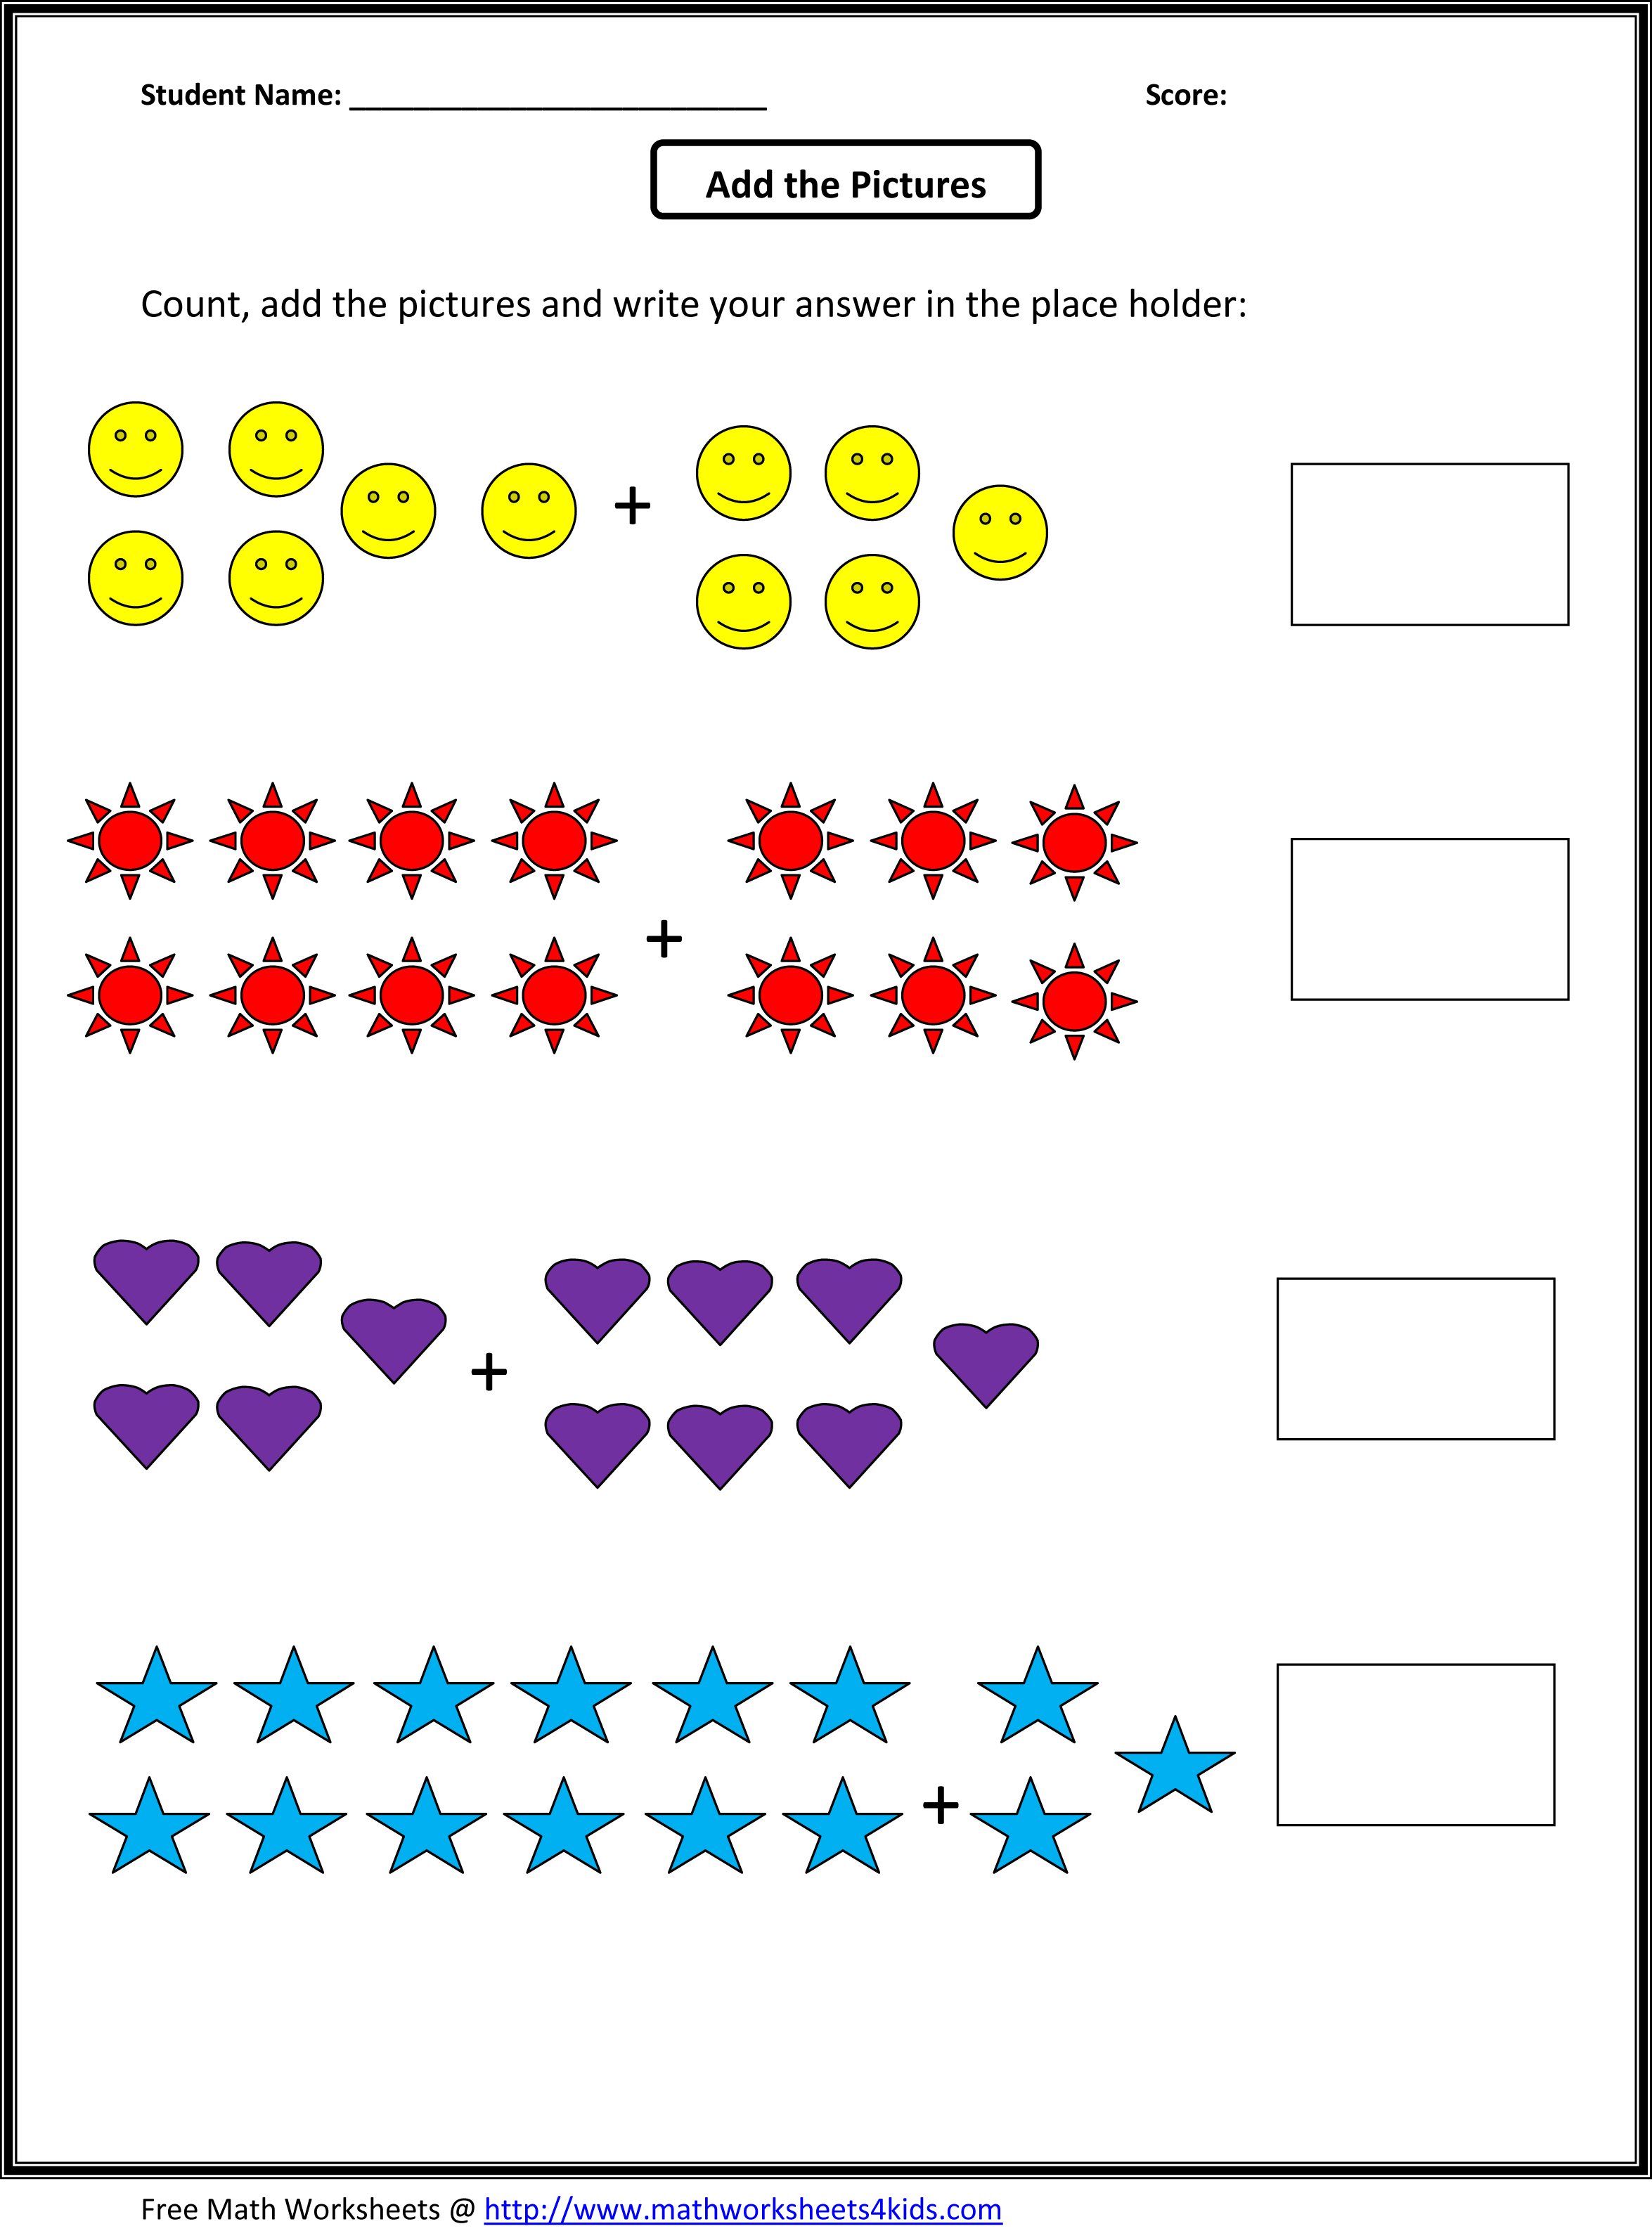 Weirdmailus  Wonderful Grade  Maths Worksheet  Reocurent With Likable Math Worksheets For St Grade Free  Reocurent With Amazing Proportion Word Problem Worksheets Also Common And Proper Nouns Worksheets Grade  In Addition Critical Thinking Worksheets For Th Grade And Fire Safety Worksheets For Kids As Well As Stereotype Worksheets Additionally Free Worksheets First Grade From Reocurentcom With Weirdmailus  Likable Grade  Maths Worksheet  Reocurent With Amazing Math Worksheets For St Grade Free  Reocurent And Wonderful Proportion Word Problem Worksheets Also Common And Proper Nouns Worksheets Grade  In Addition Critical Thinking Worksheets For Th Grade From Reocurentcom